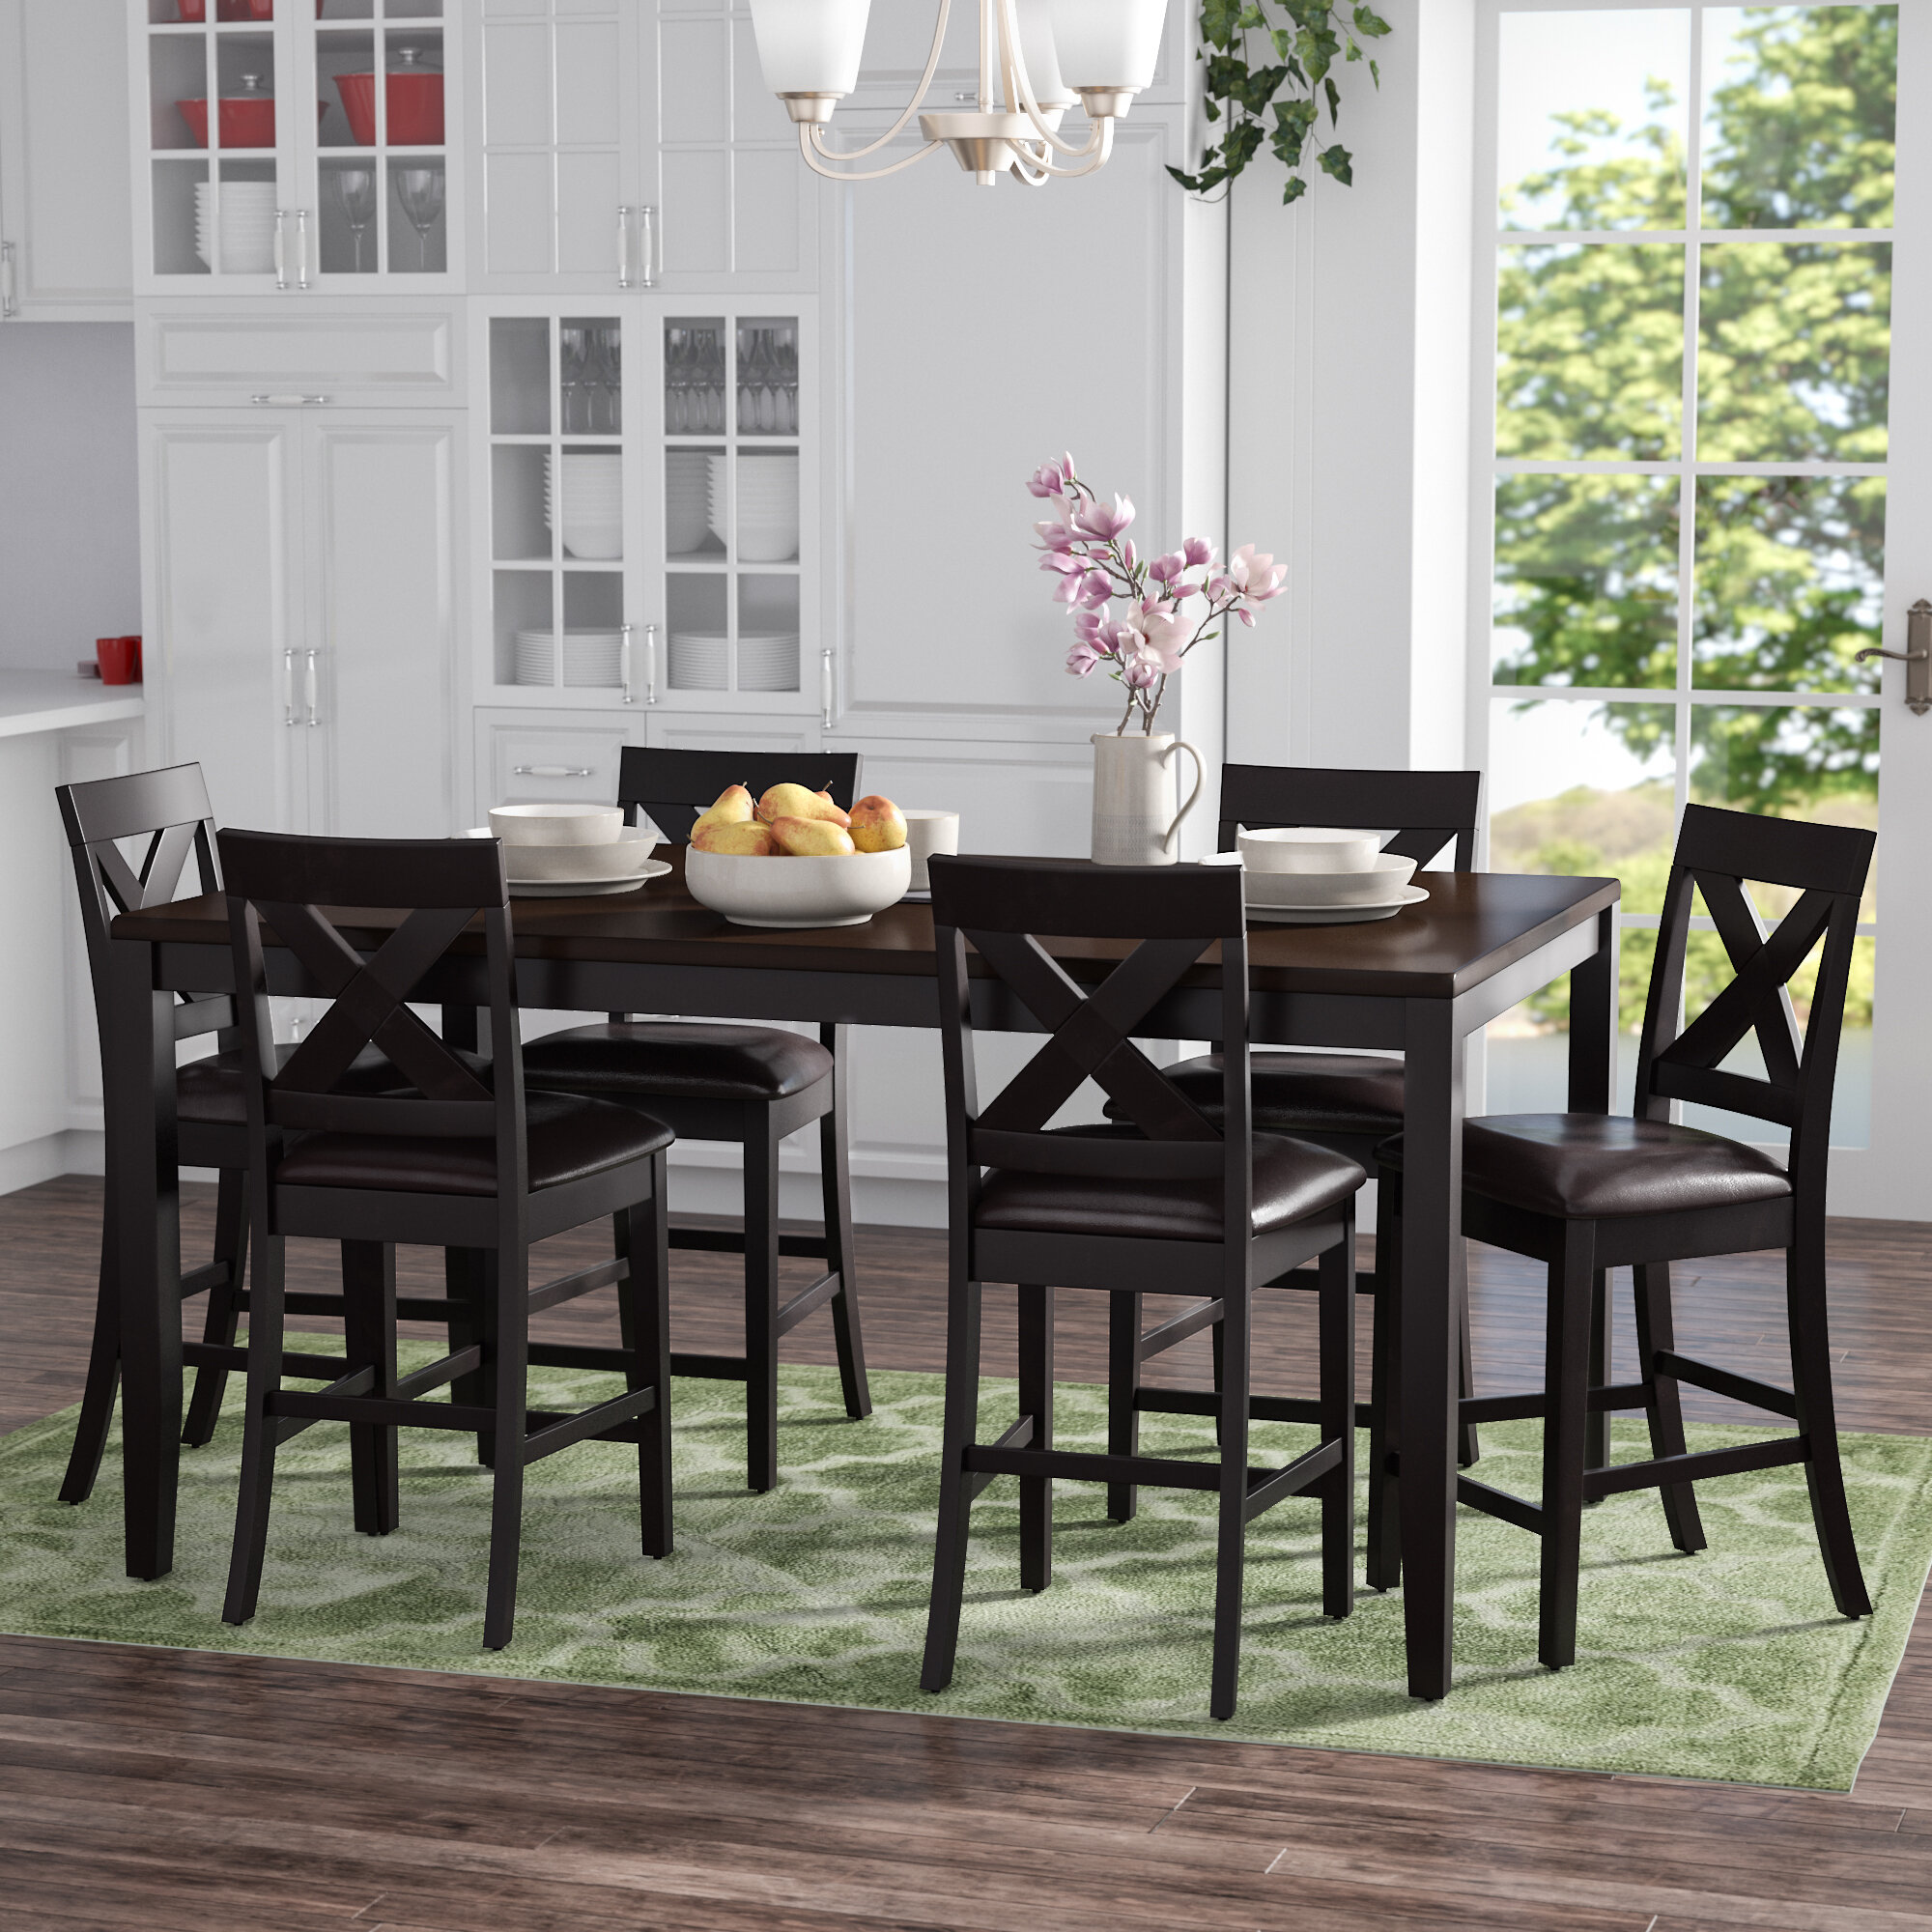 Darby Home Co Nadine Rectangular 7 Piece Breakfast Nook Dining Set Reviews Wayfair